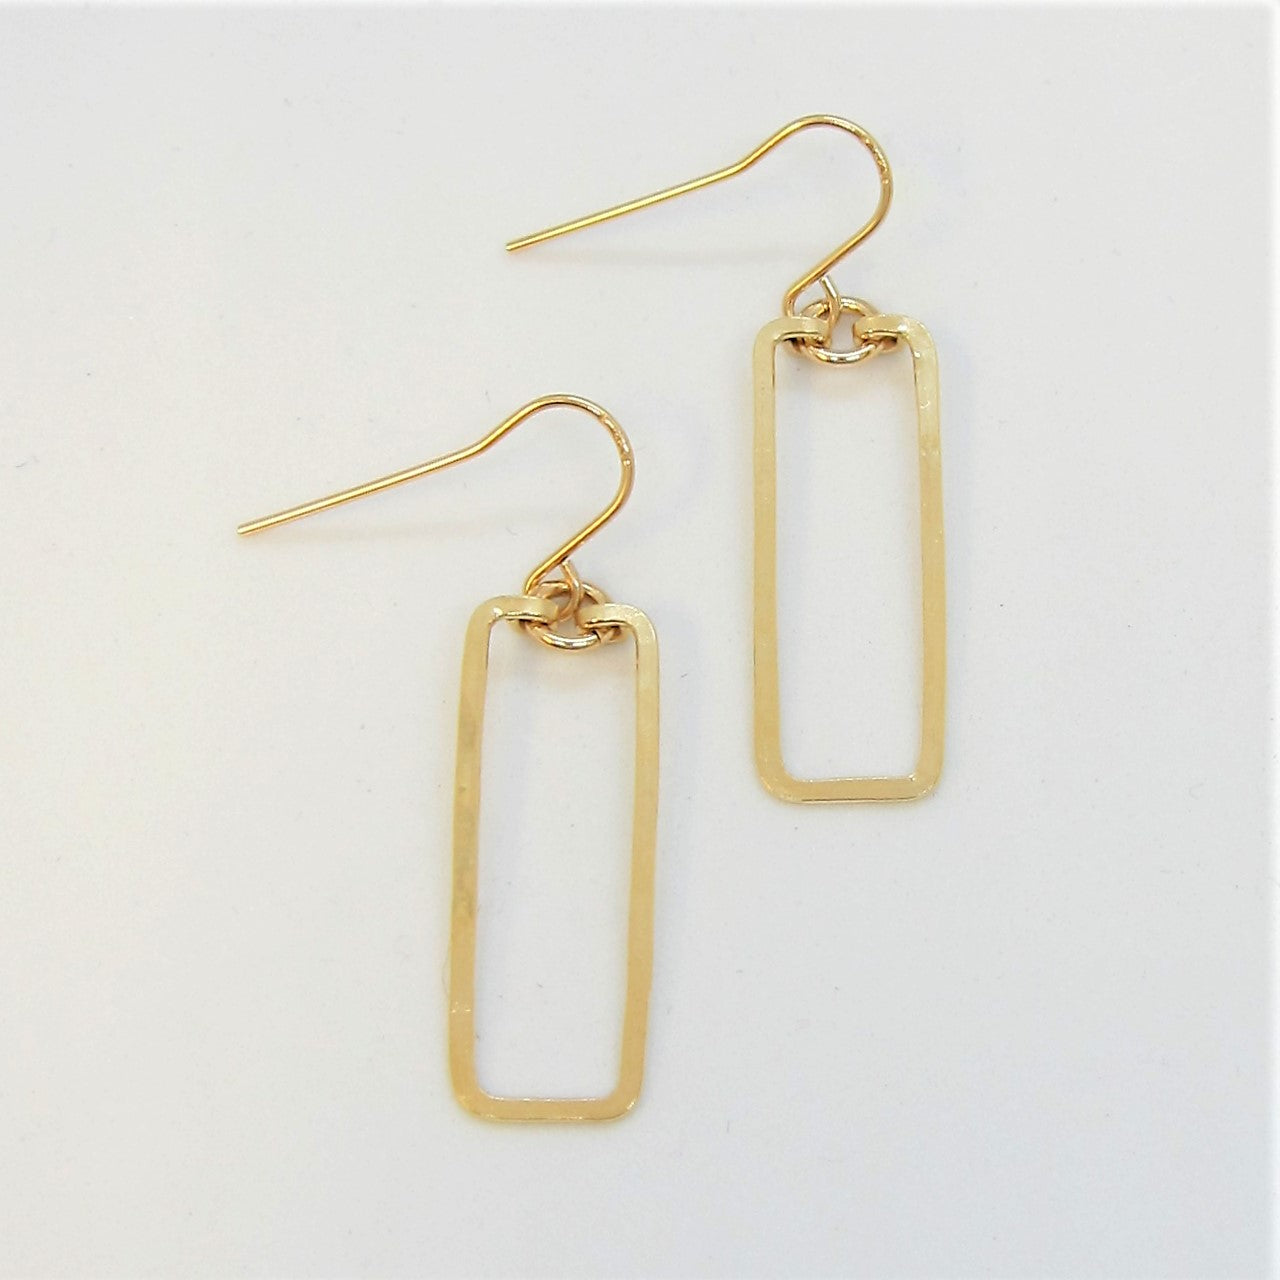 J.Mills Studio - Small Single Rectangle Earrings Gold